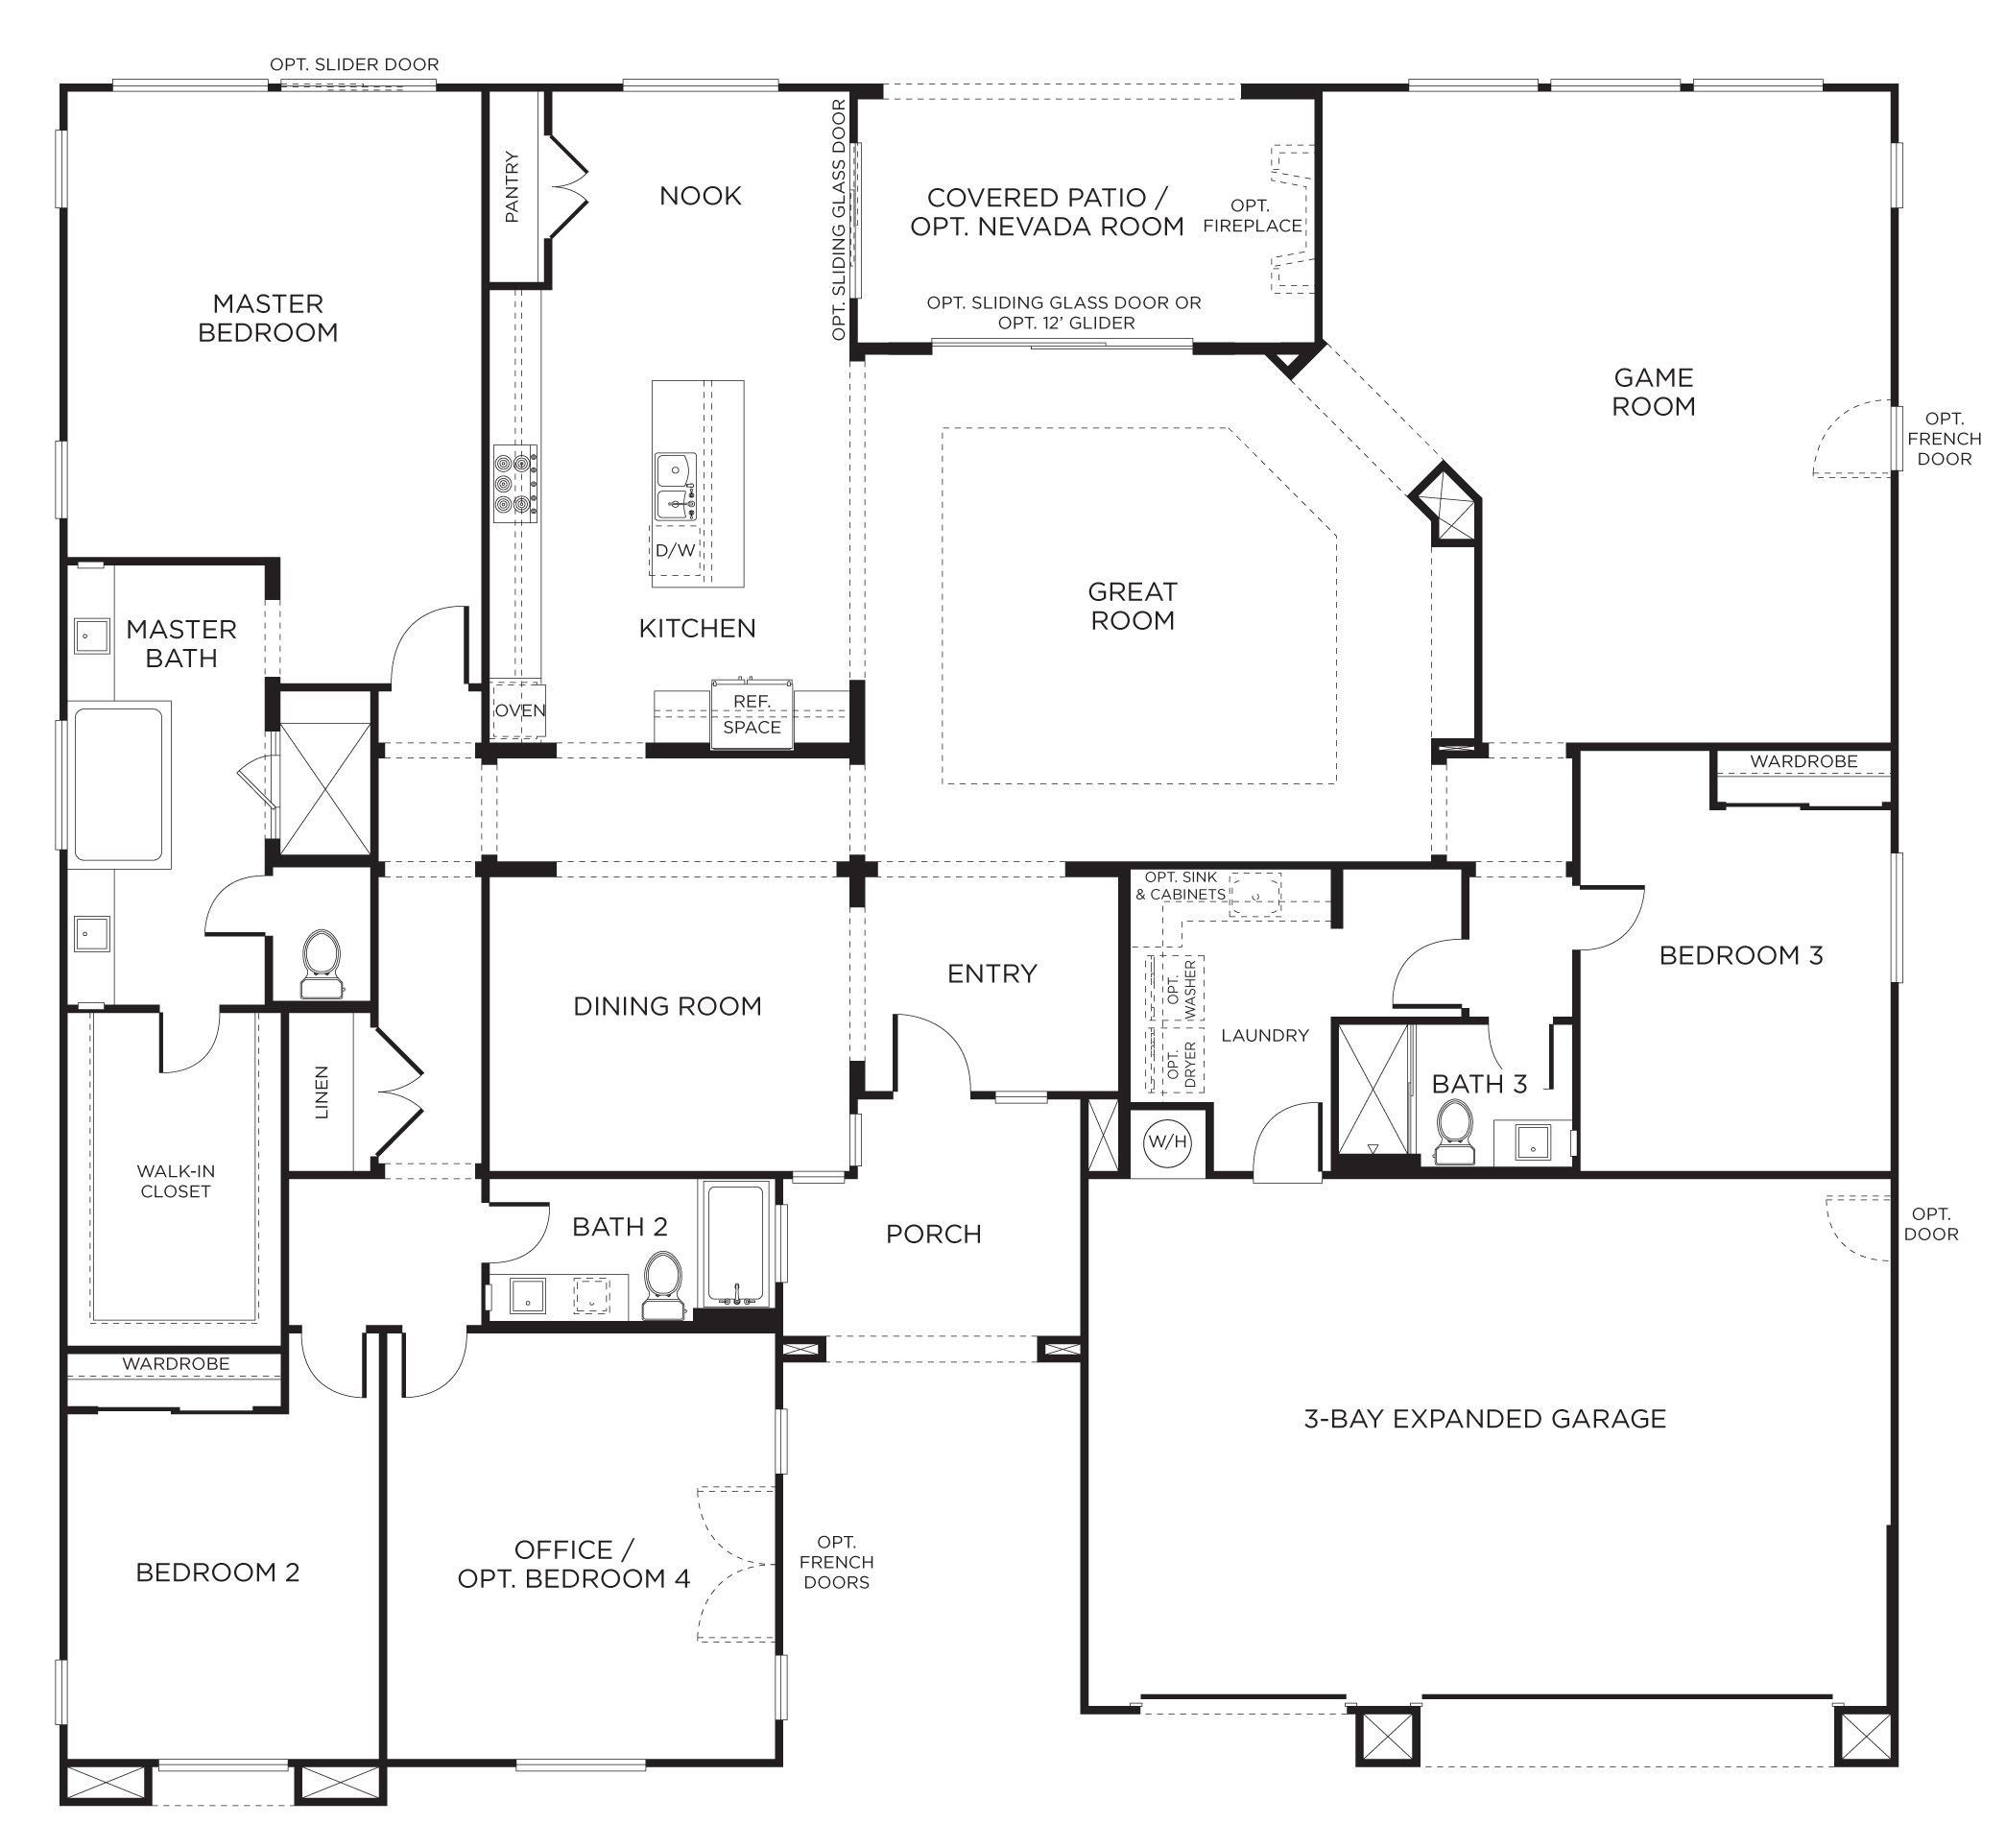 Floorplan 2 3 4 bedrooms 3 bathrooms 3400 square feet One story house plans